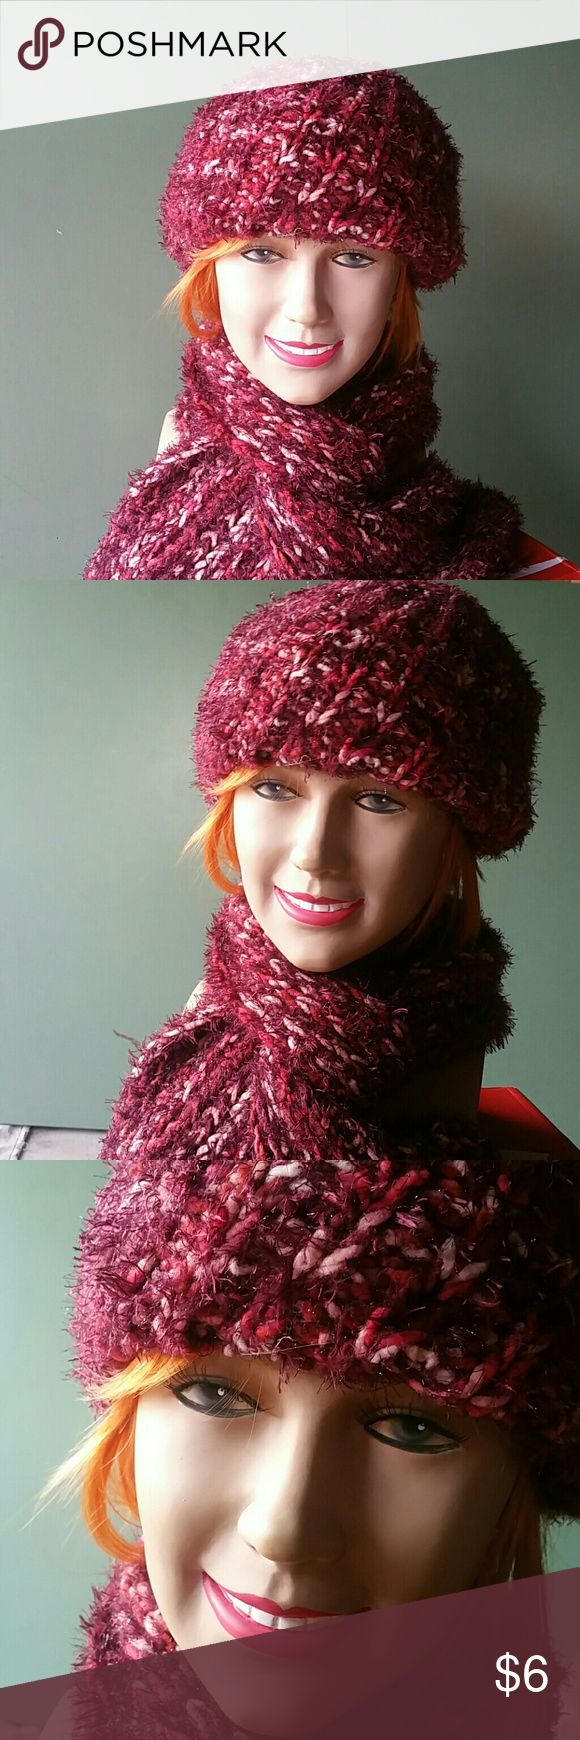 Raspberry Baret Set Soft Cranberry colored Yarn Makes This Beret & Scarf Set Is Both Fashion Forward And Cozy. Was A Gift From A Well Meaning Family Member Who Forgot How Hot California Is Almost Year Round.  Nearly New. Jaclyn Smith Accessories